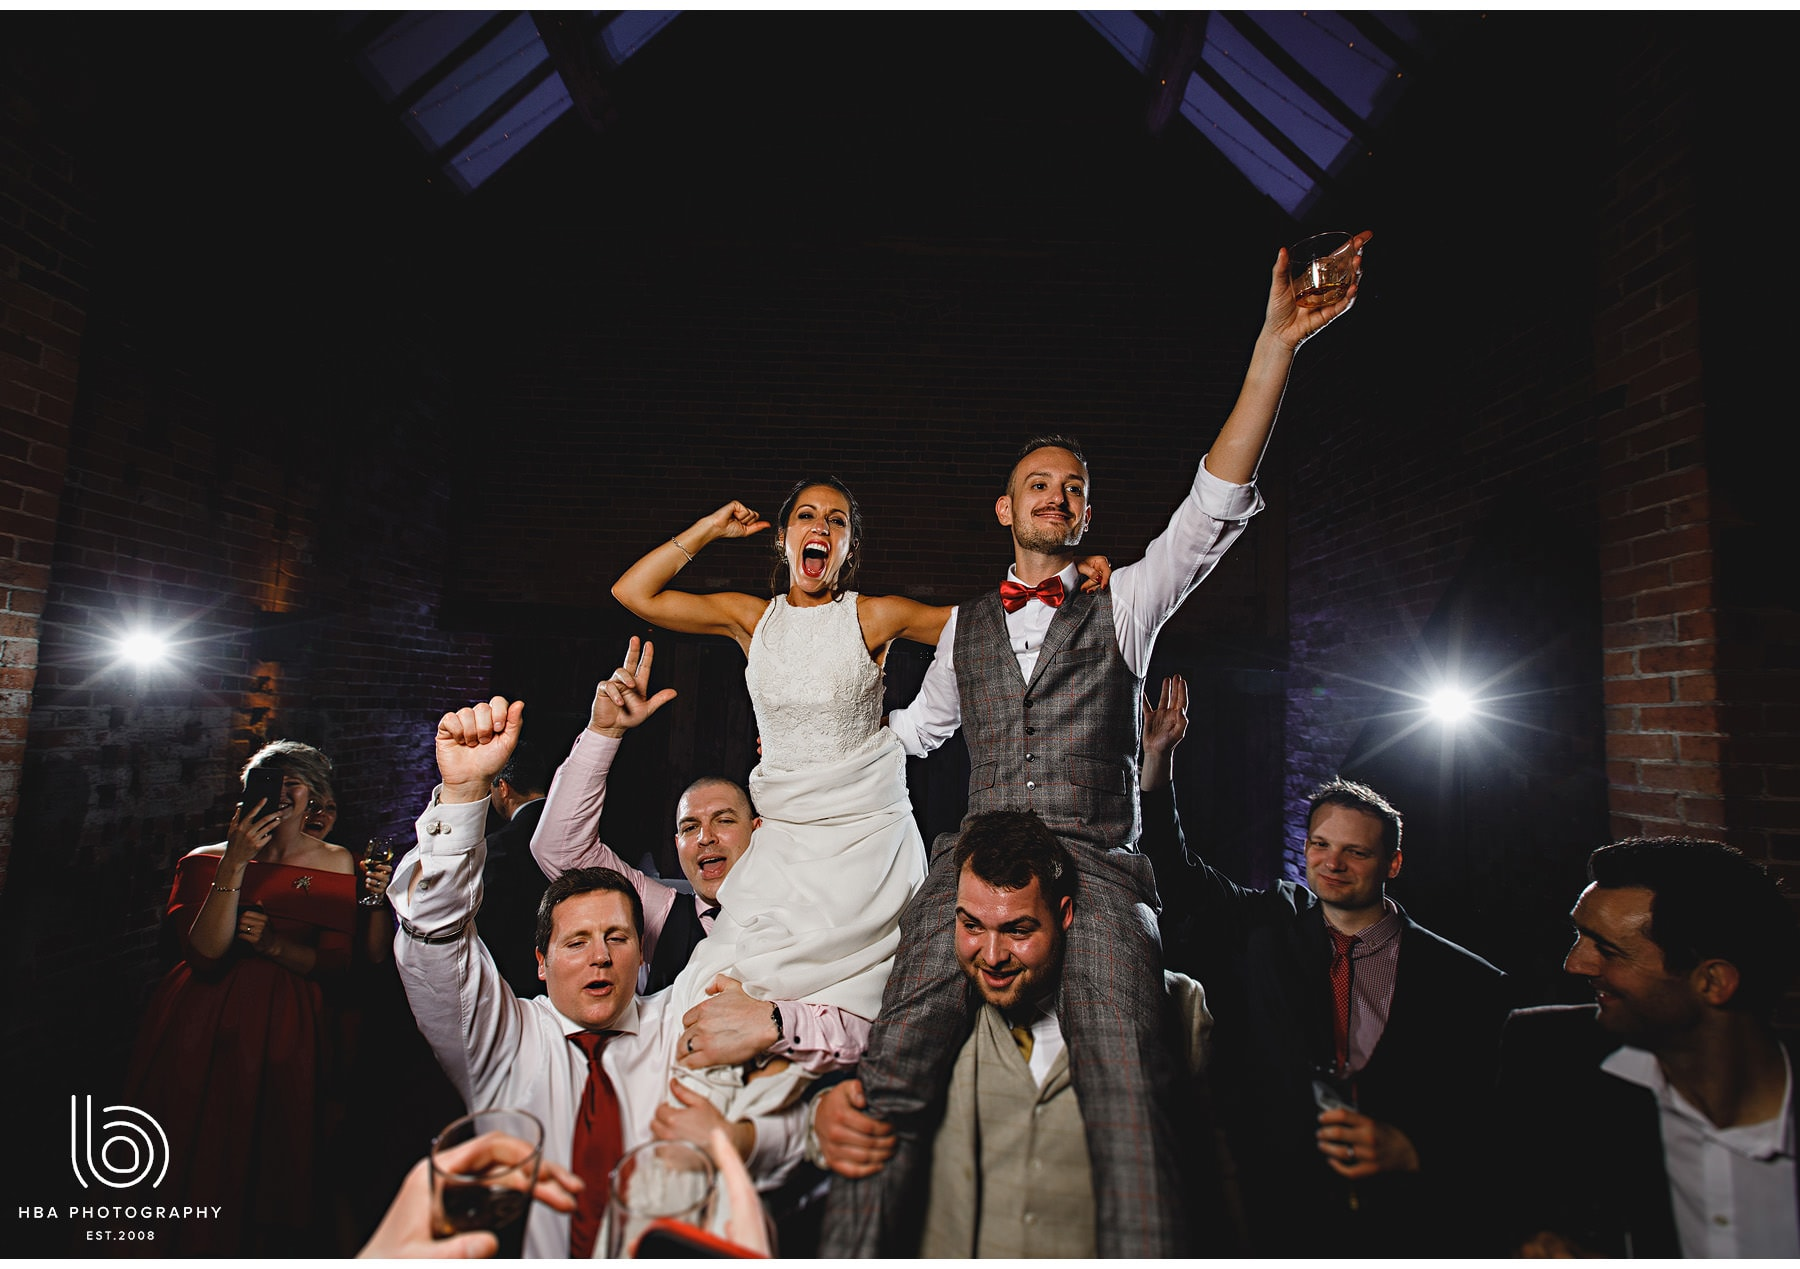 the bride and groom lifted onto friends shoulders!